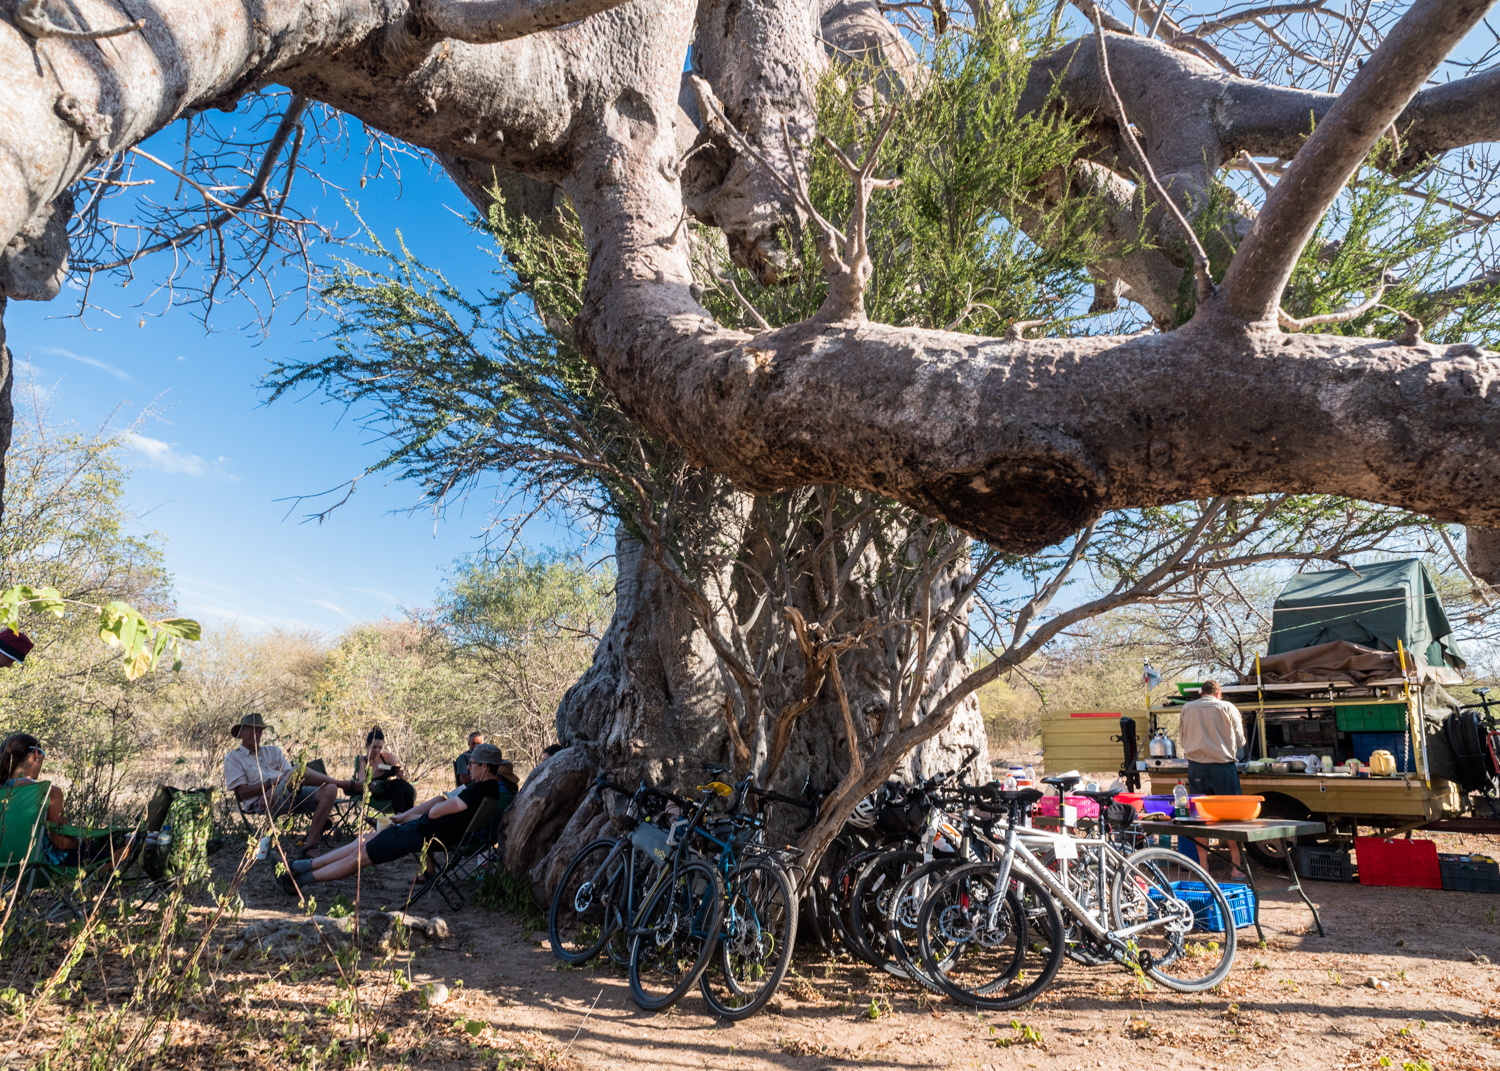 Wild camp somewhere near the Namibian border under an ancient Baobab Tree was one of the most spectacular nights of Leg 4. We set up the kitchen on one side and the lounge on the other reveling in the shade, it was the only tree we had seen for hours. Baobab are both protected and worshipped in many parts of Southern Africa, and we were visited by a church group who sang and danced under the tree that night.